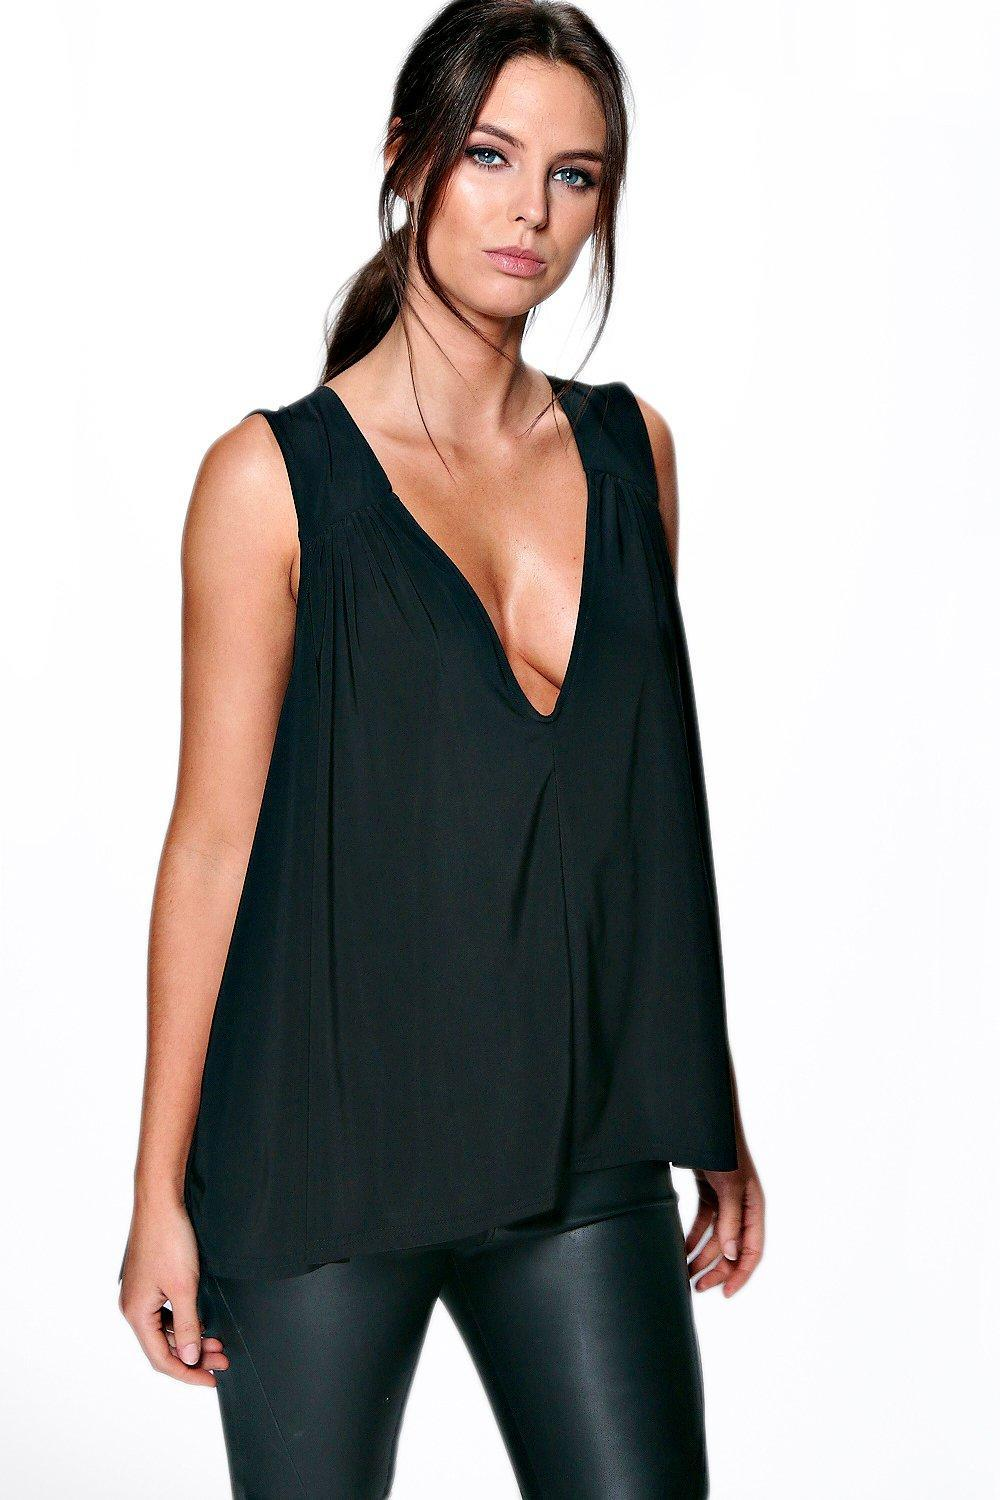 Cape Back Slinky V Neck Top Black - neckline: plunge; pattern: plain; sleeve style: sleeveless; style: vest top; predominant colour: black; occasions: casual; length: standard; fibres: polyester/polyamide - 100%; fit: loose; sleeve length: sleeveless; pattern type: fabric; texture group: jersey - stretchy/drapey; season: a/w 2015; wardrobe: basic